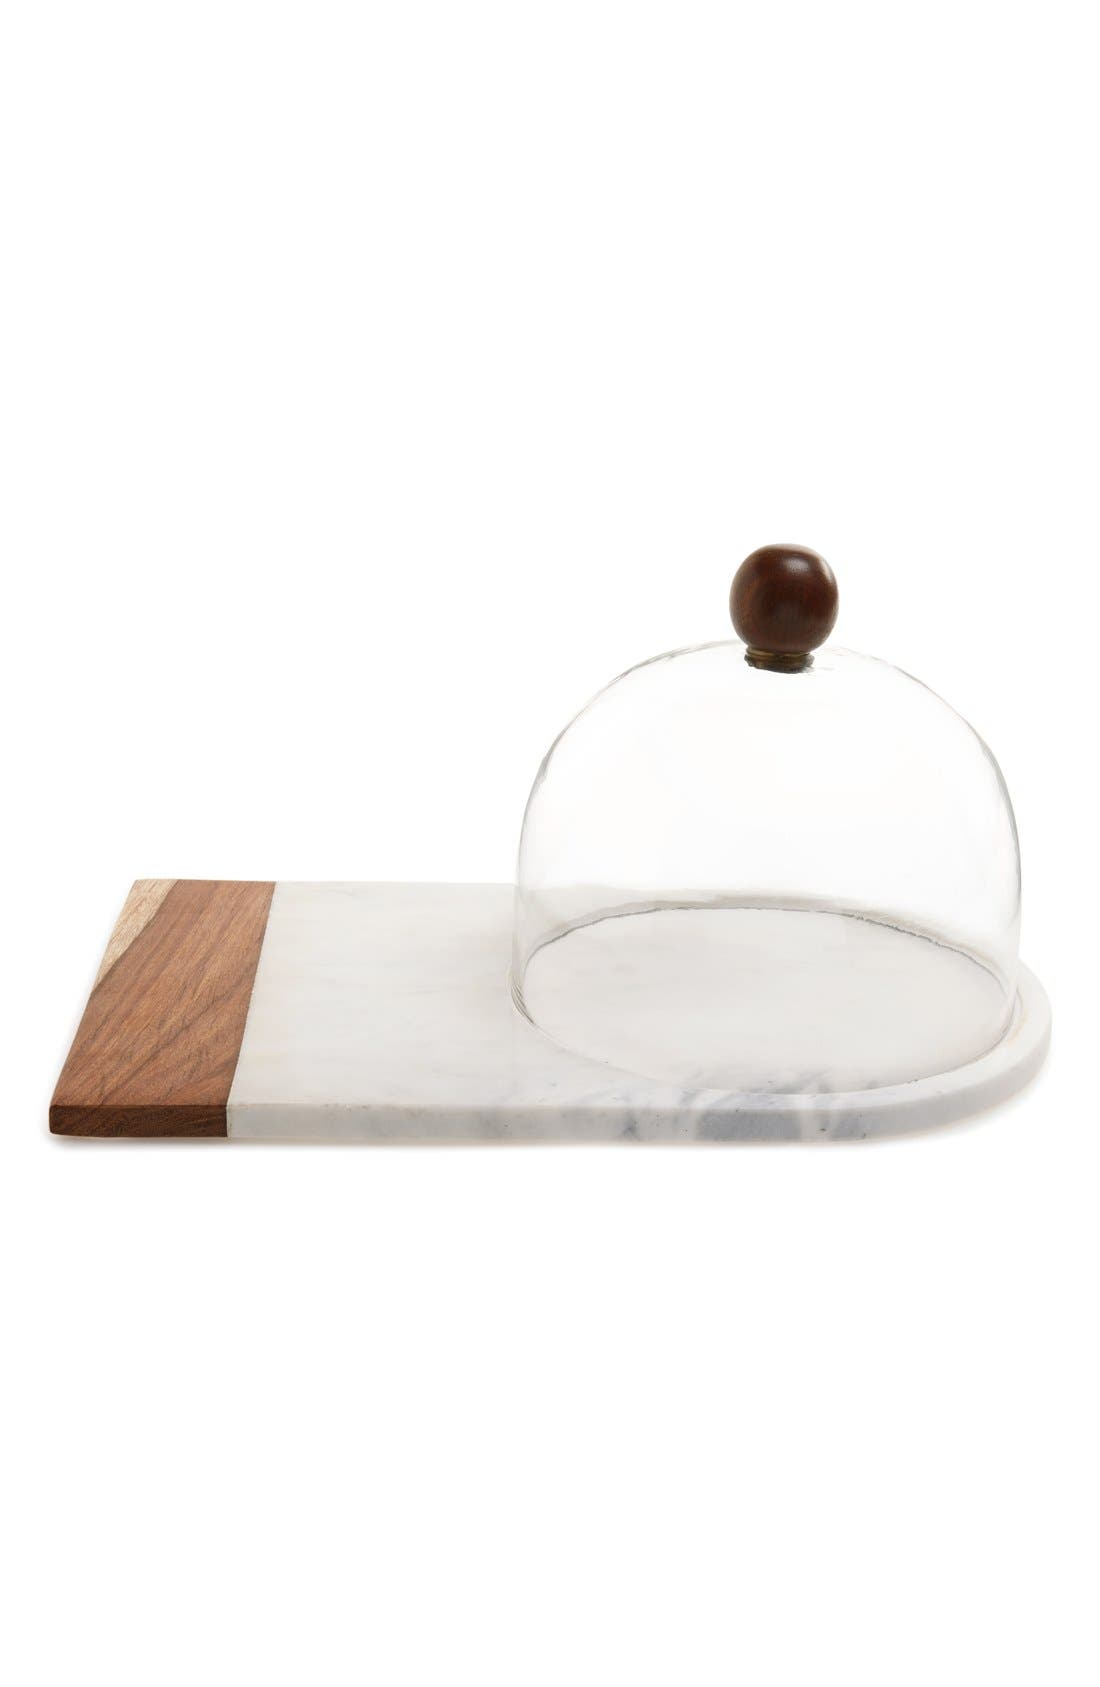 Main Image - Thirstystone Marble & Wood Serving Platter